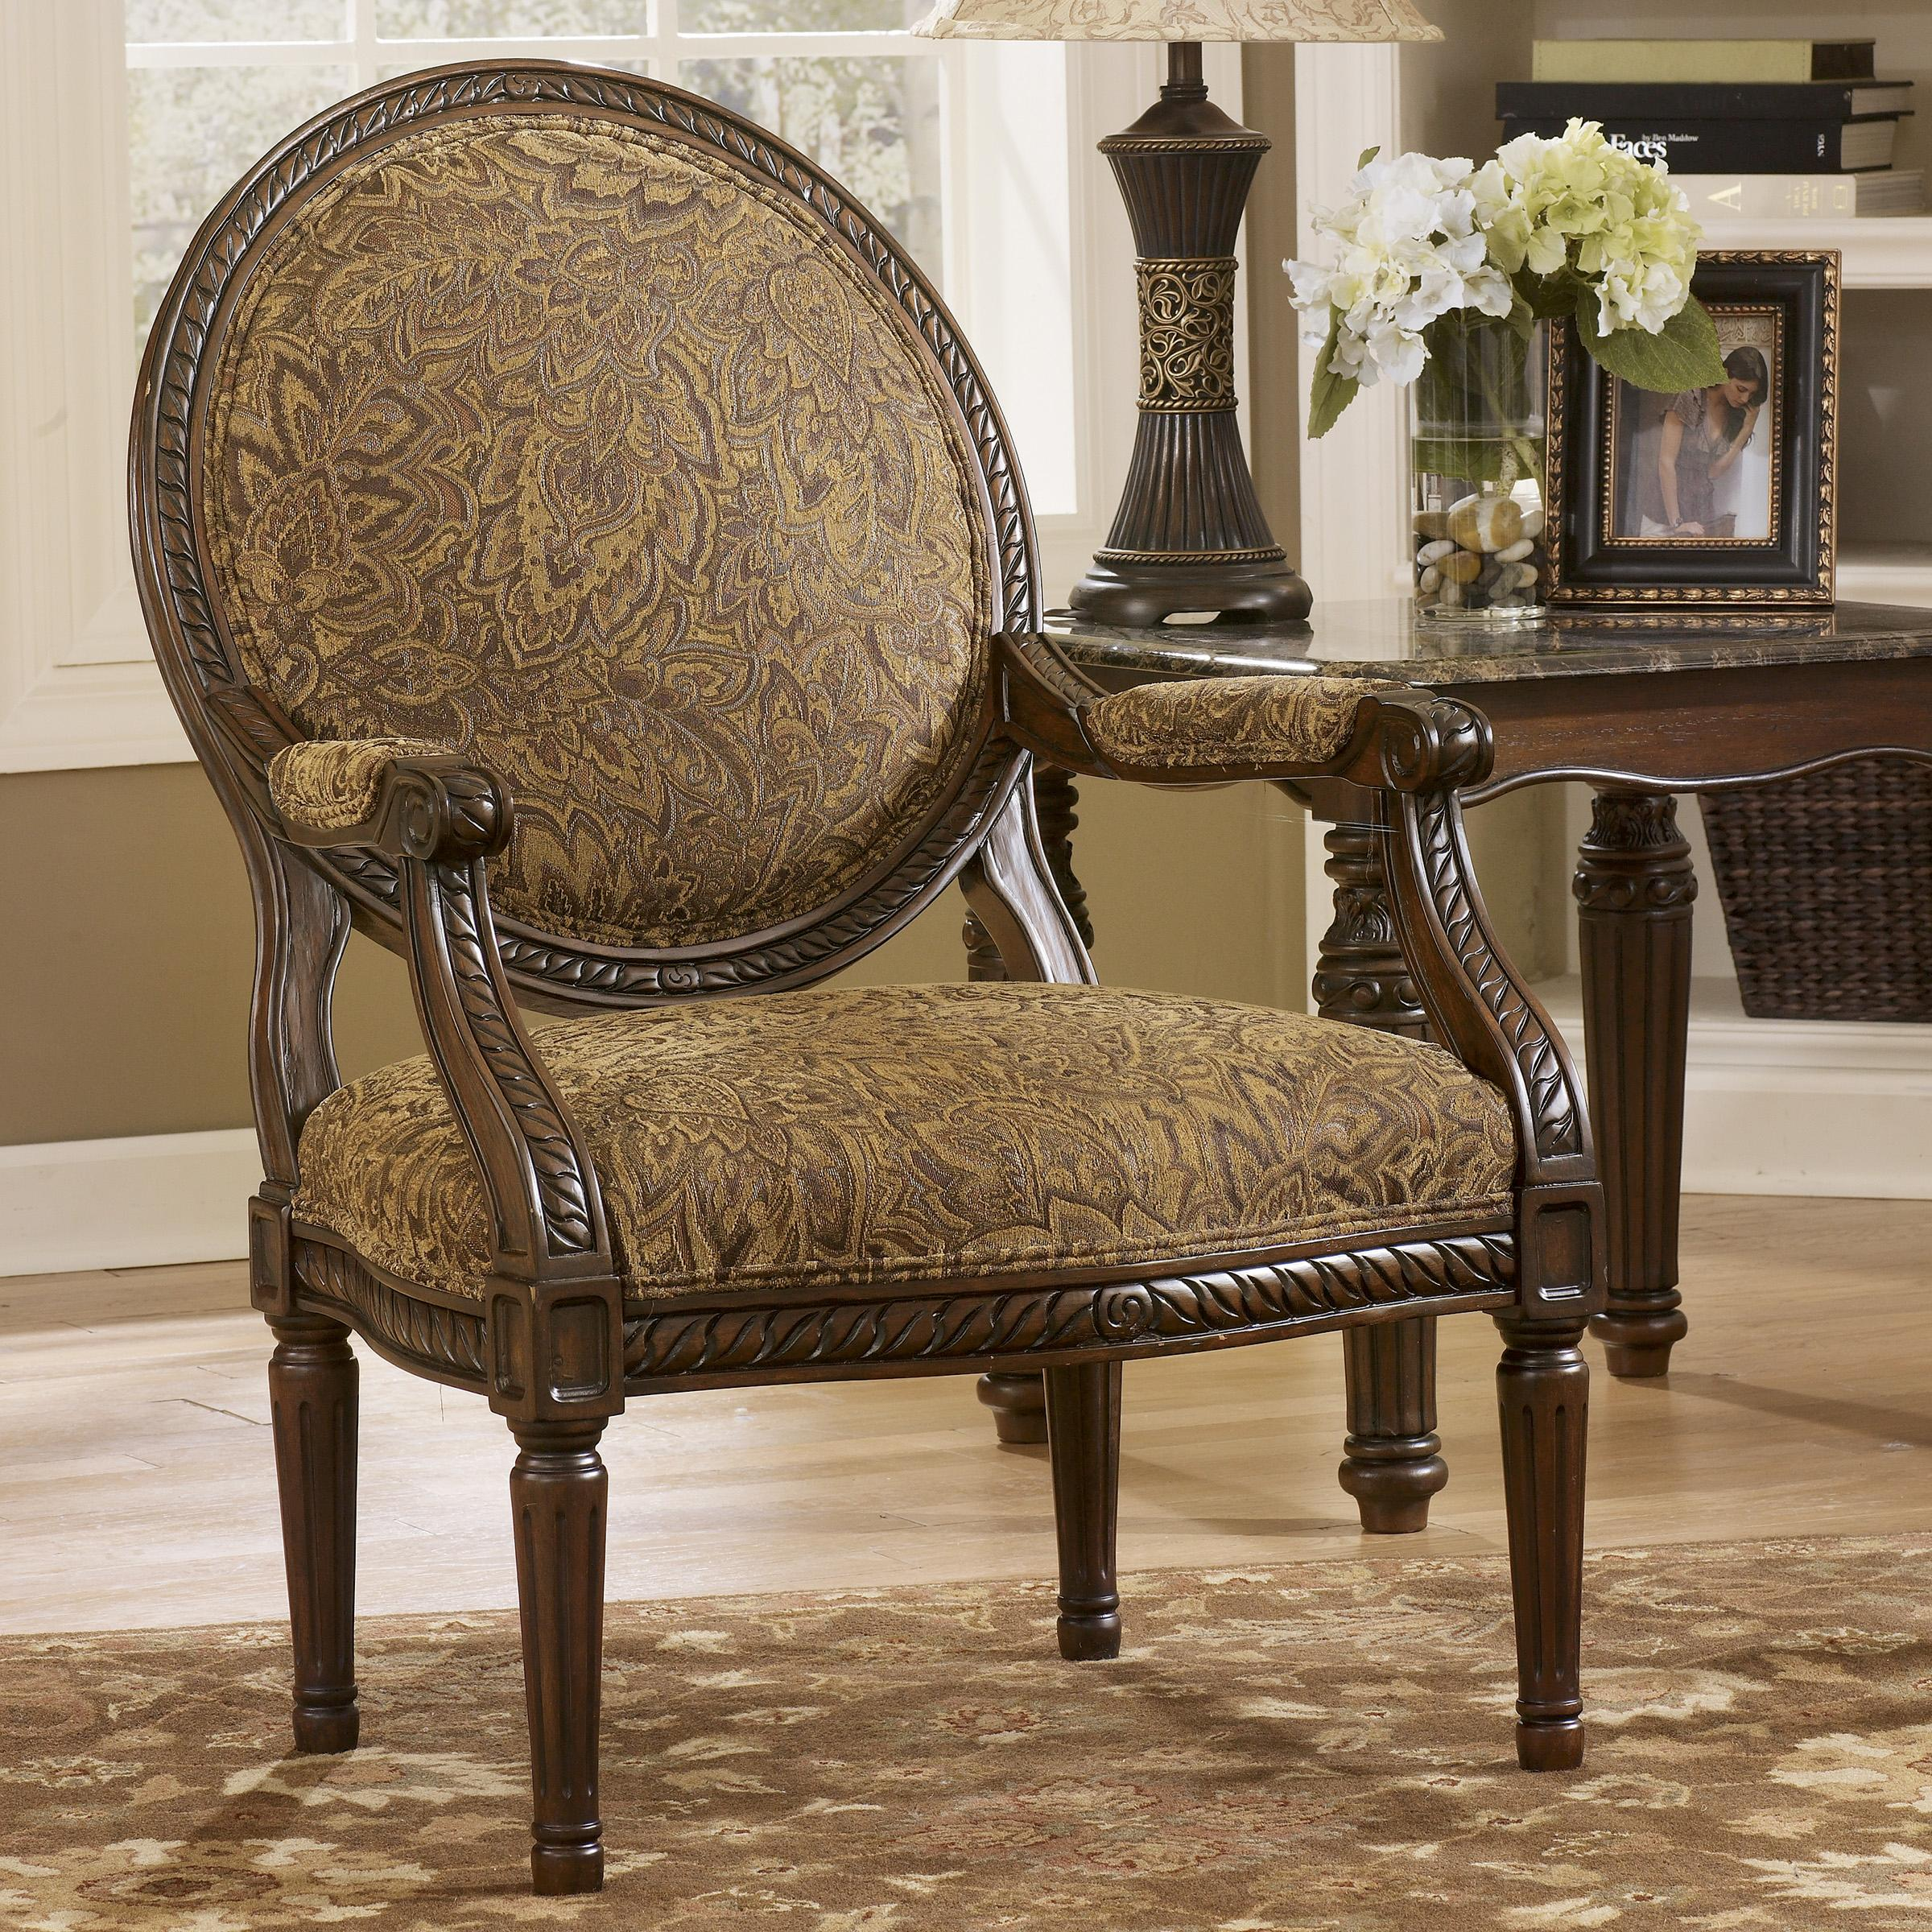 Signature Design by Ashley Cambridge - Amber Showood Accent Chair - Item Number: 3940160